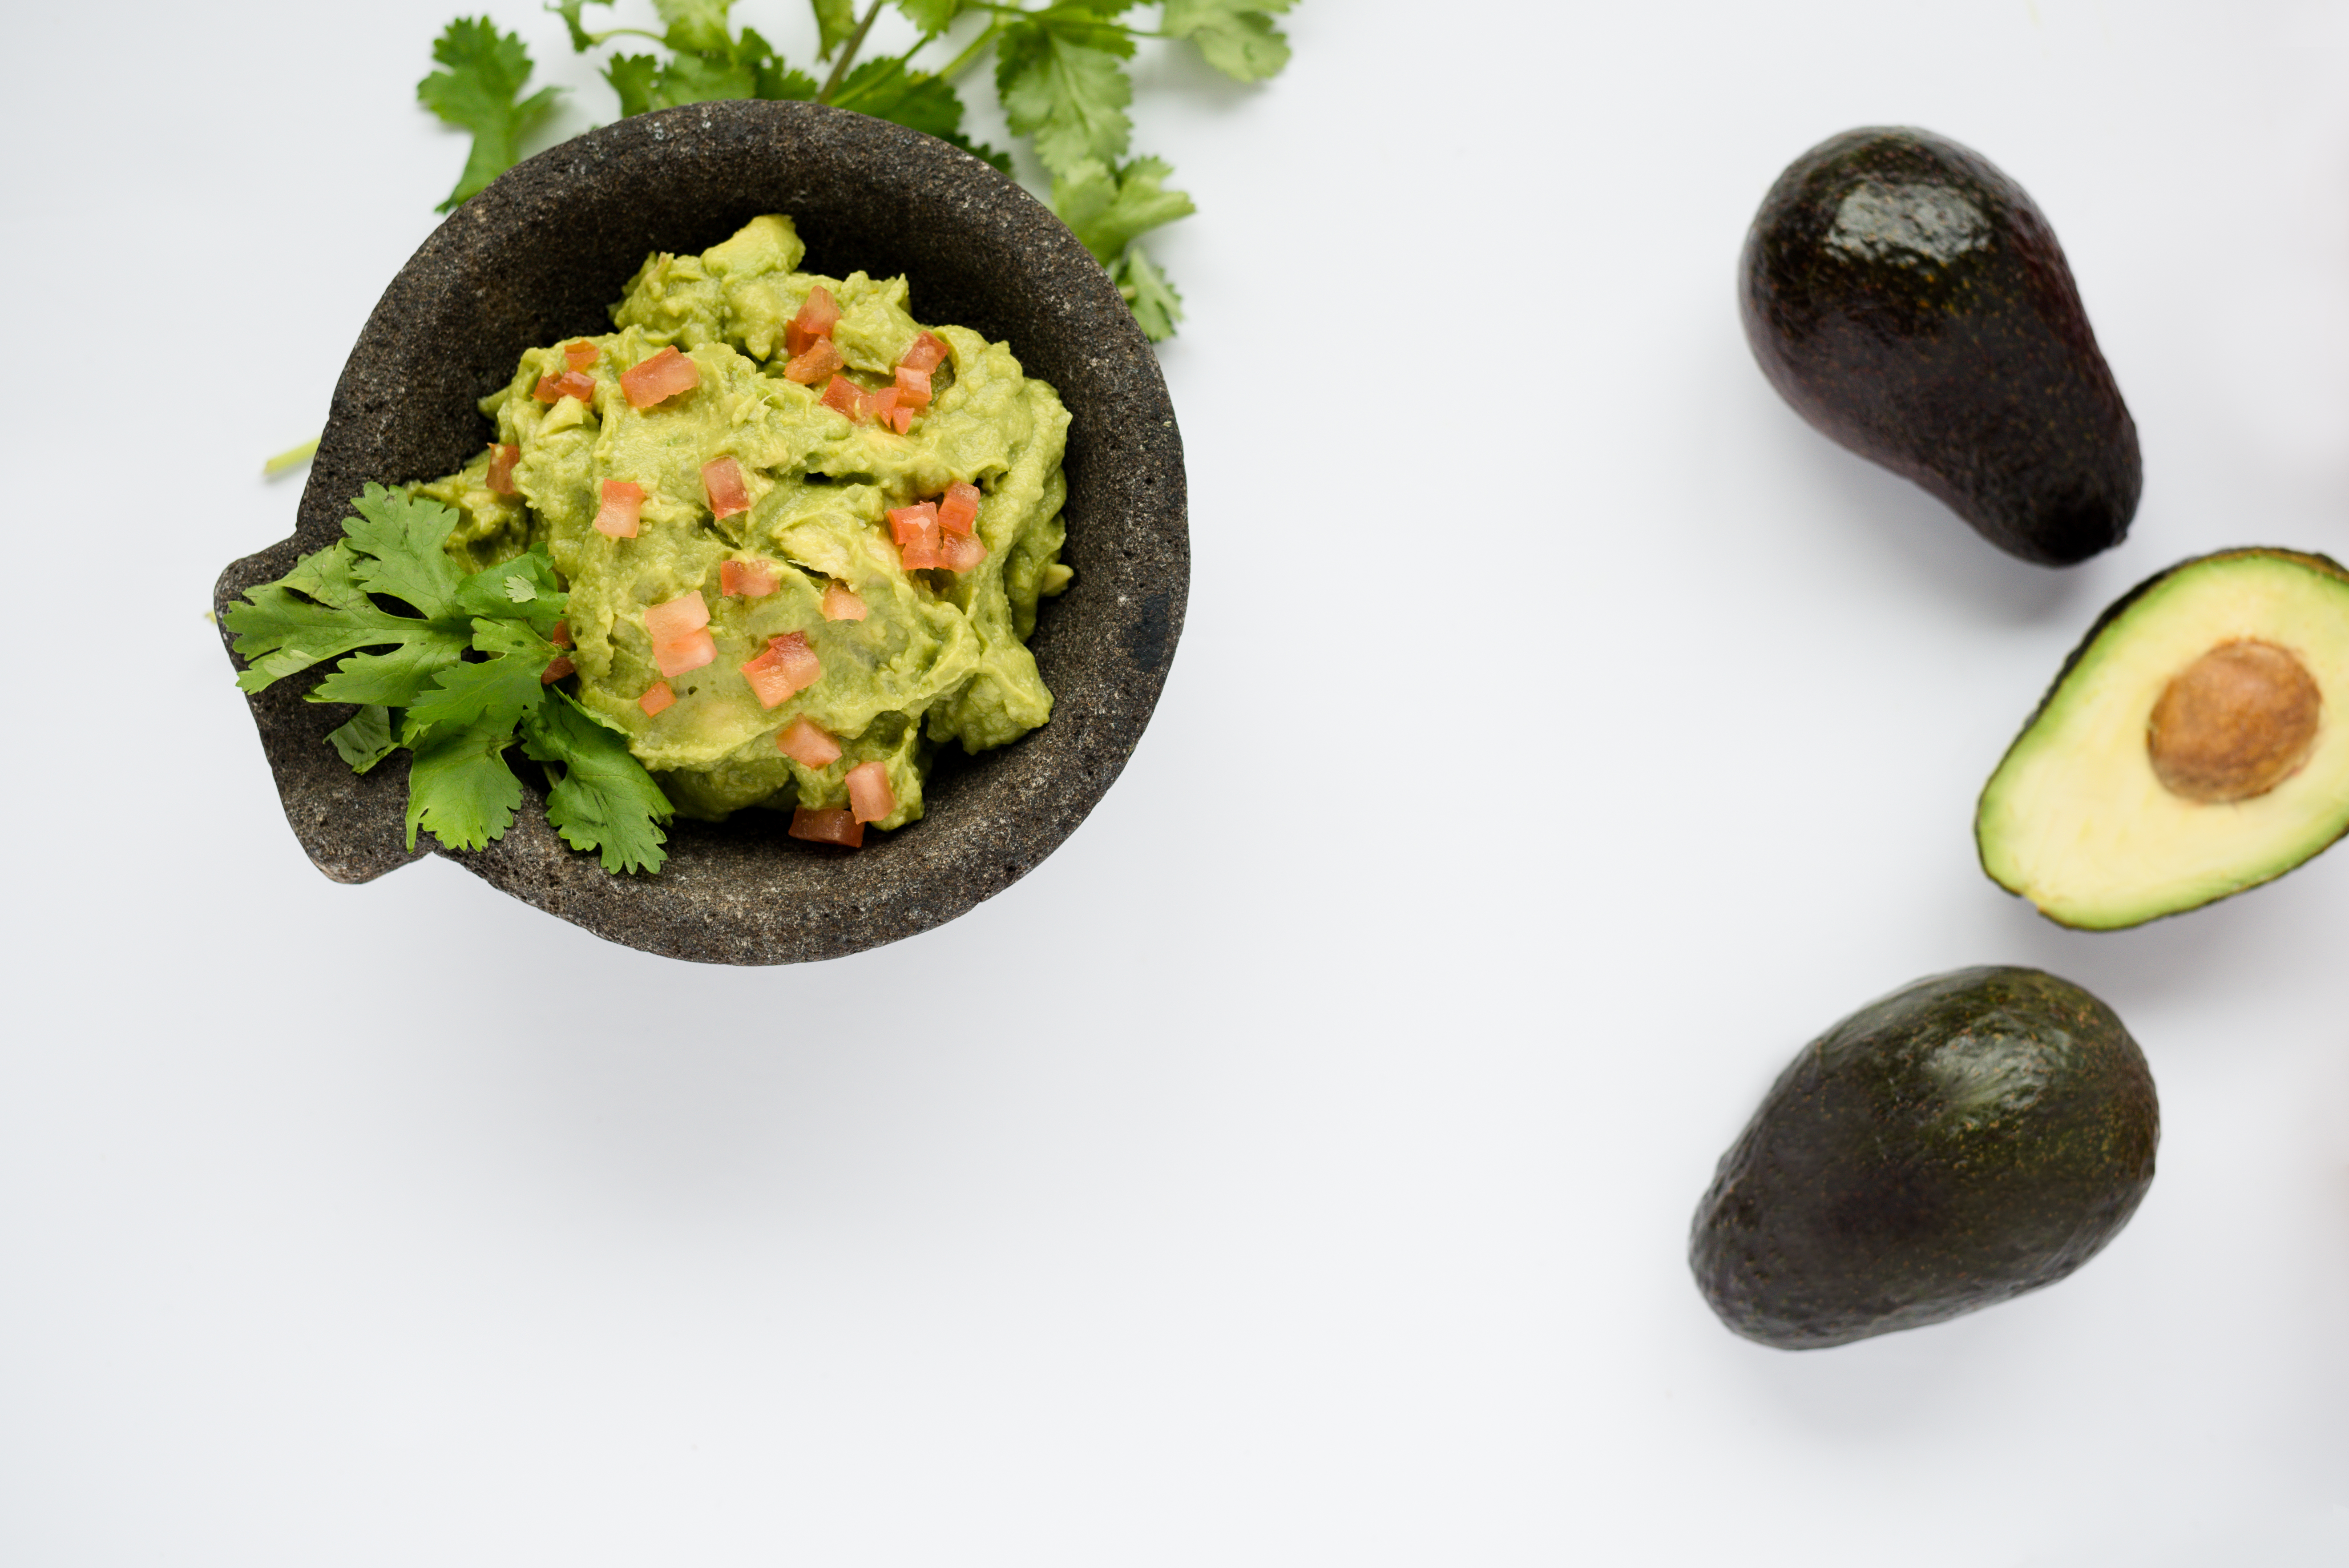 health benefits of guacamole | healthy eating | sf gate